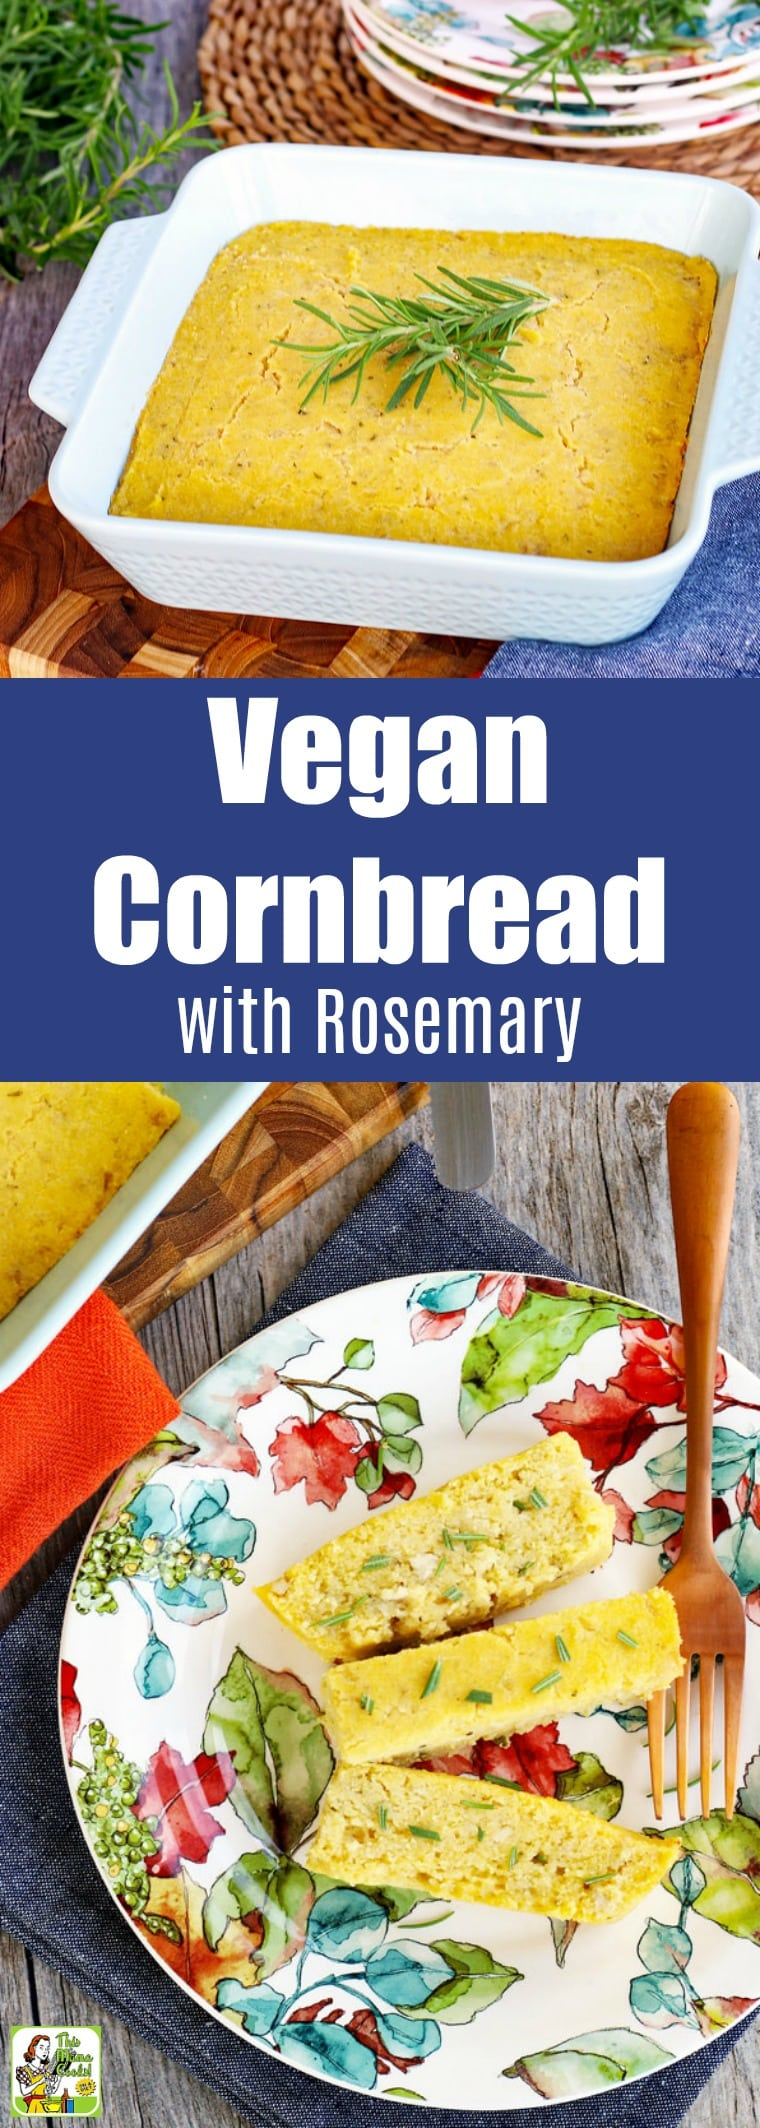 Vegan cornbread with rosemary is perfect for Thanksgiving and making stuffing. You\'ll love gluten-free cornbread for cookouts, too. #recipes #easy #recipeoftheday #glutenfree #easyrecipe #easyrecipes #glutenfreerecipes #baking #thanksgiving #Thanksgivingrecipes #veganfood #vegan #veganrecipes #dairyfree #eggfree #sidedish